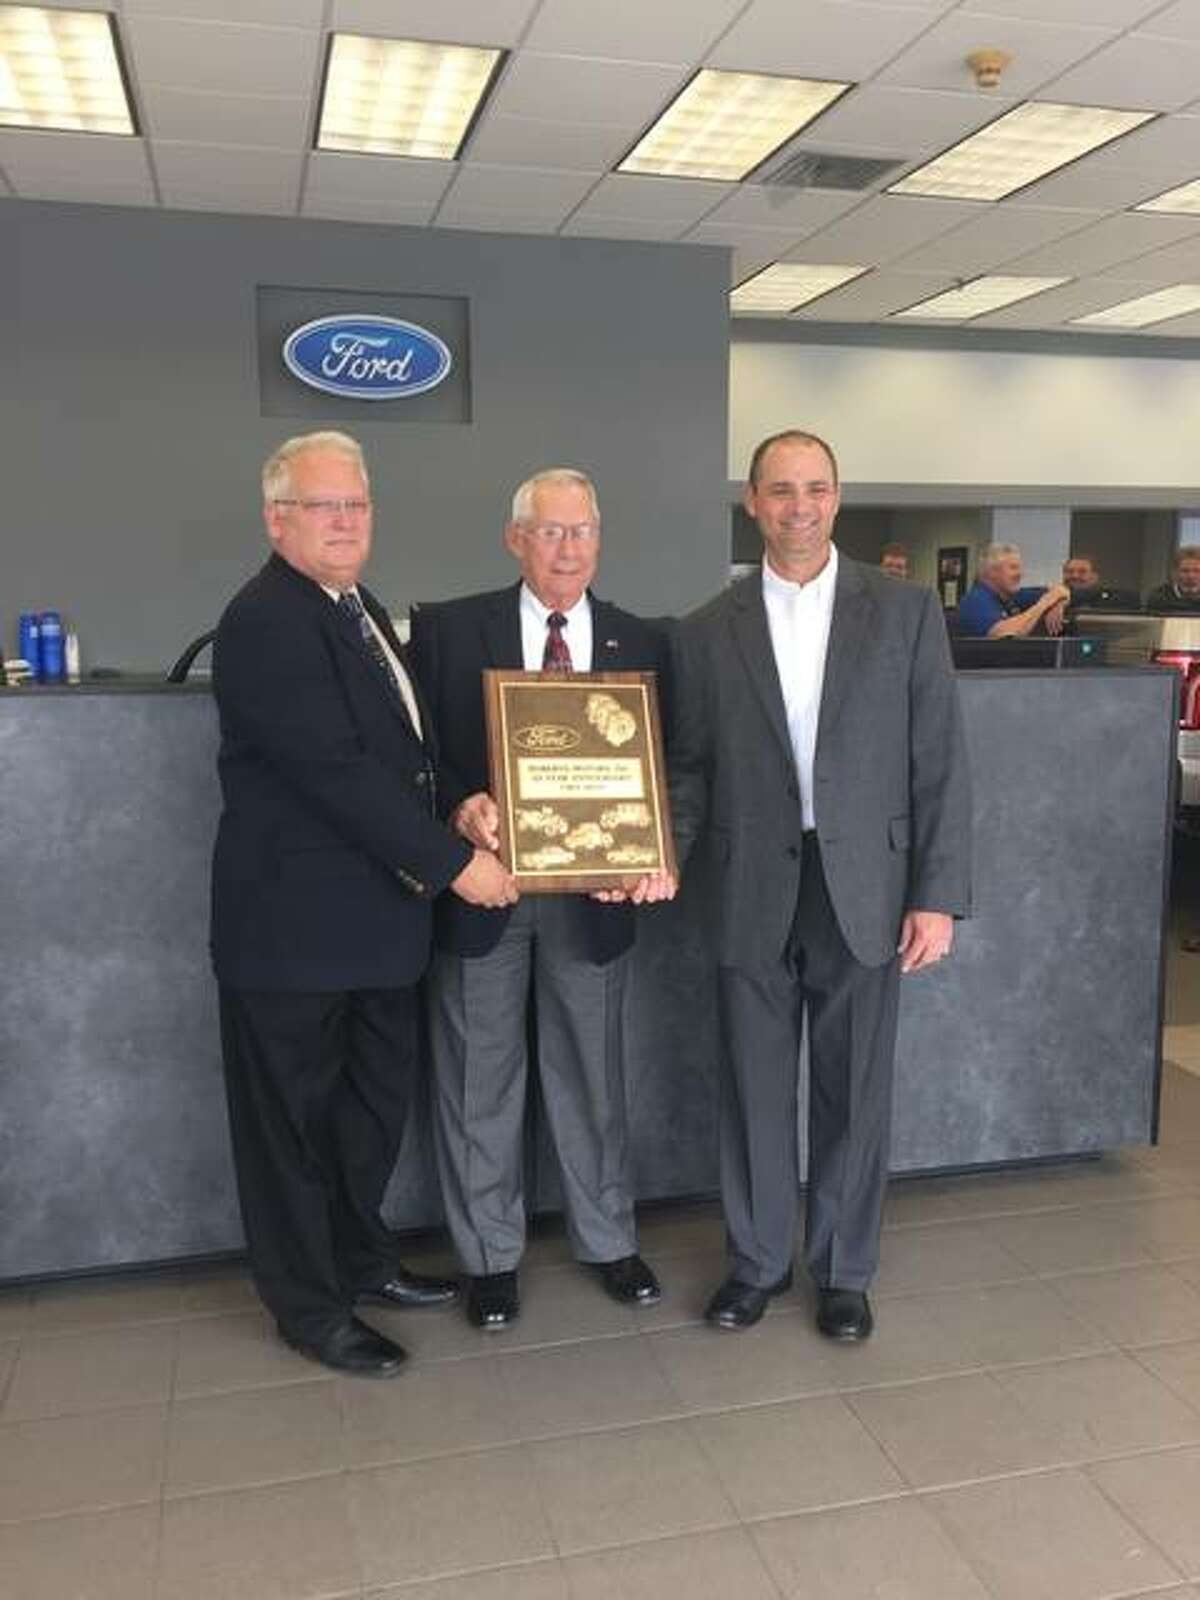 Sam Roberts, center, is one of a select group of 47 dealer nominees from across the country who will be honored at the National Automobile Dealers Association's 2018 NADA Show in Las Vegas, Nevada. Roberts Motors recently celebrated 50 years in business. The business, which specializes in Ford vehicles, received a plaque to commemorate the occasion. Also shown are, from left, regional manager Kevin Klossner and general manager John Roberts.